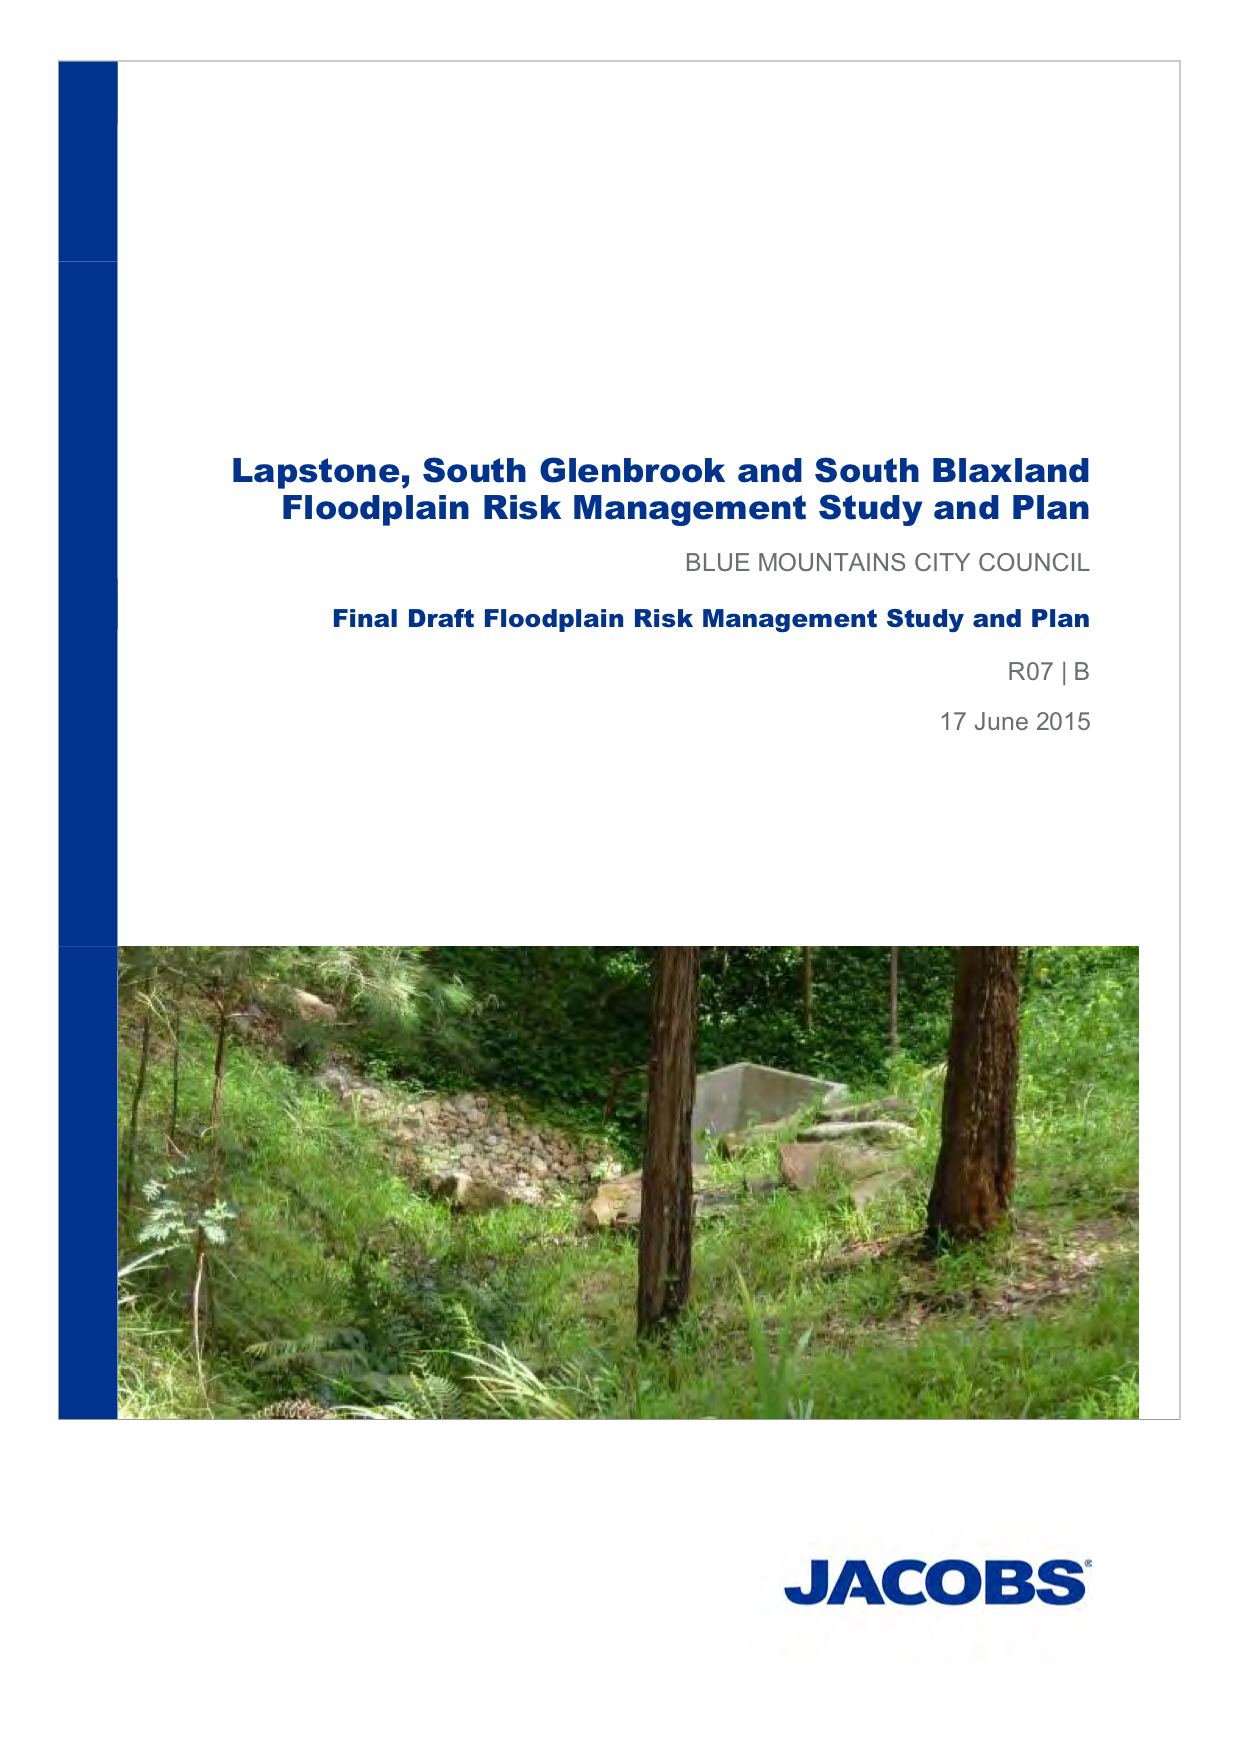 Lapstone South, South Glenbrook and South Blaxland Flood Risk Management Study and Plan